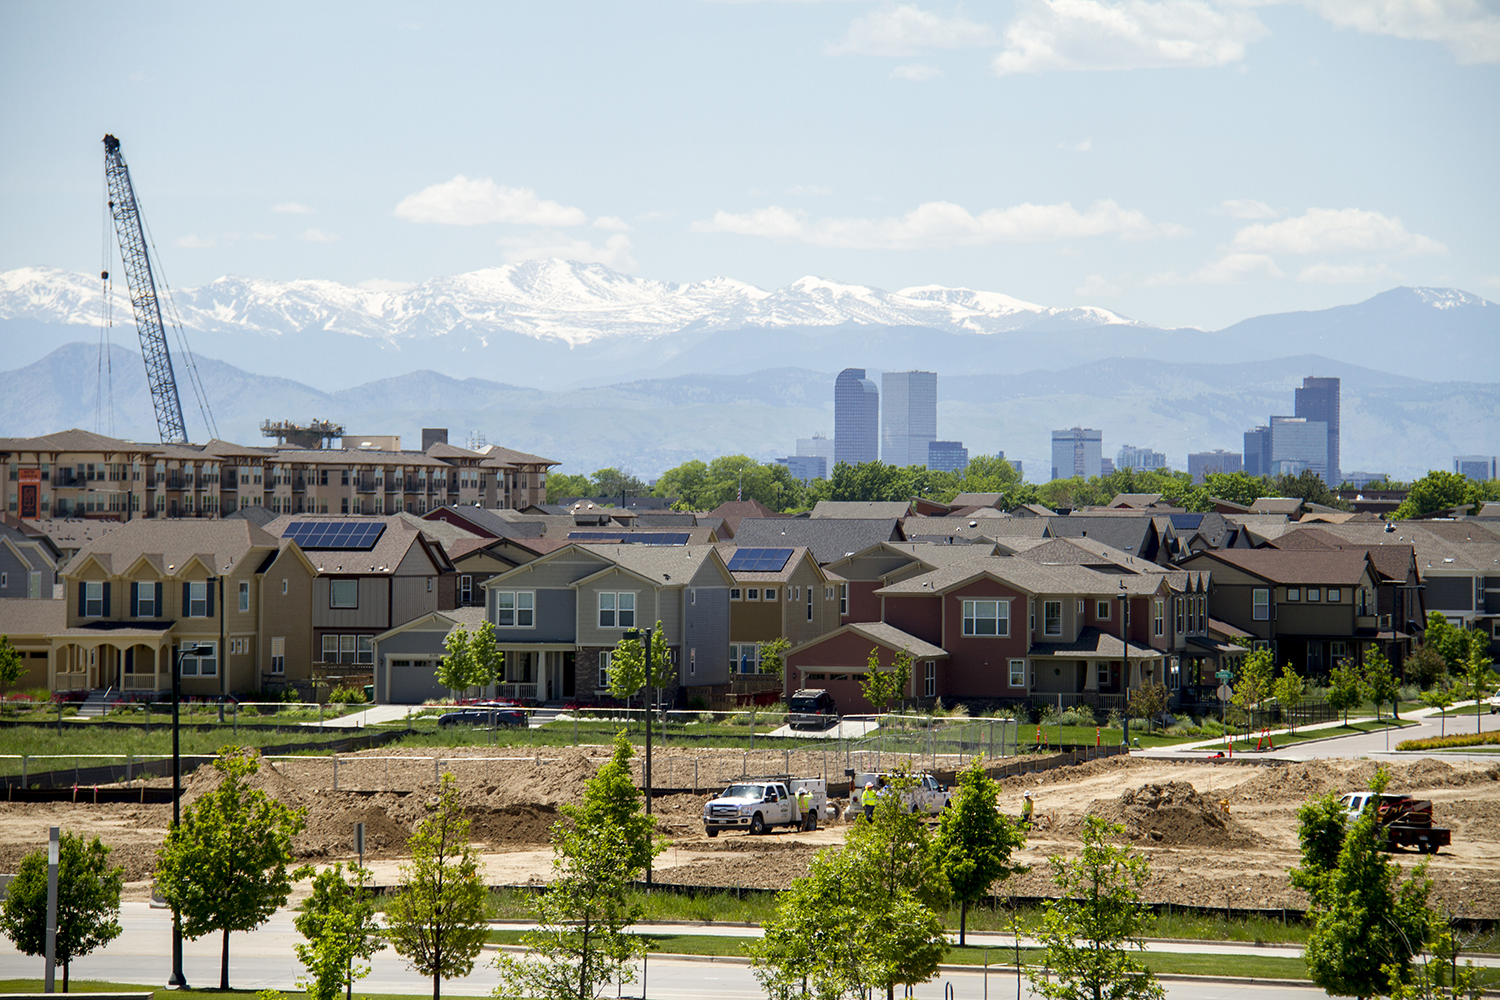 Stapleton residences under downtown Denver's skyline. (Kevin J. Beaty/Denverite)  stapleton; residential; suburbs; skyline; cityscape; denverite; denver; colorado; kevinjbeaty